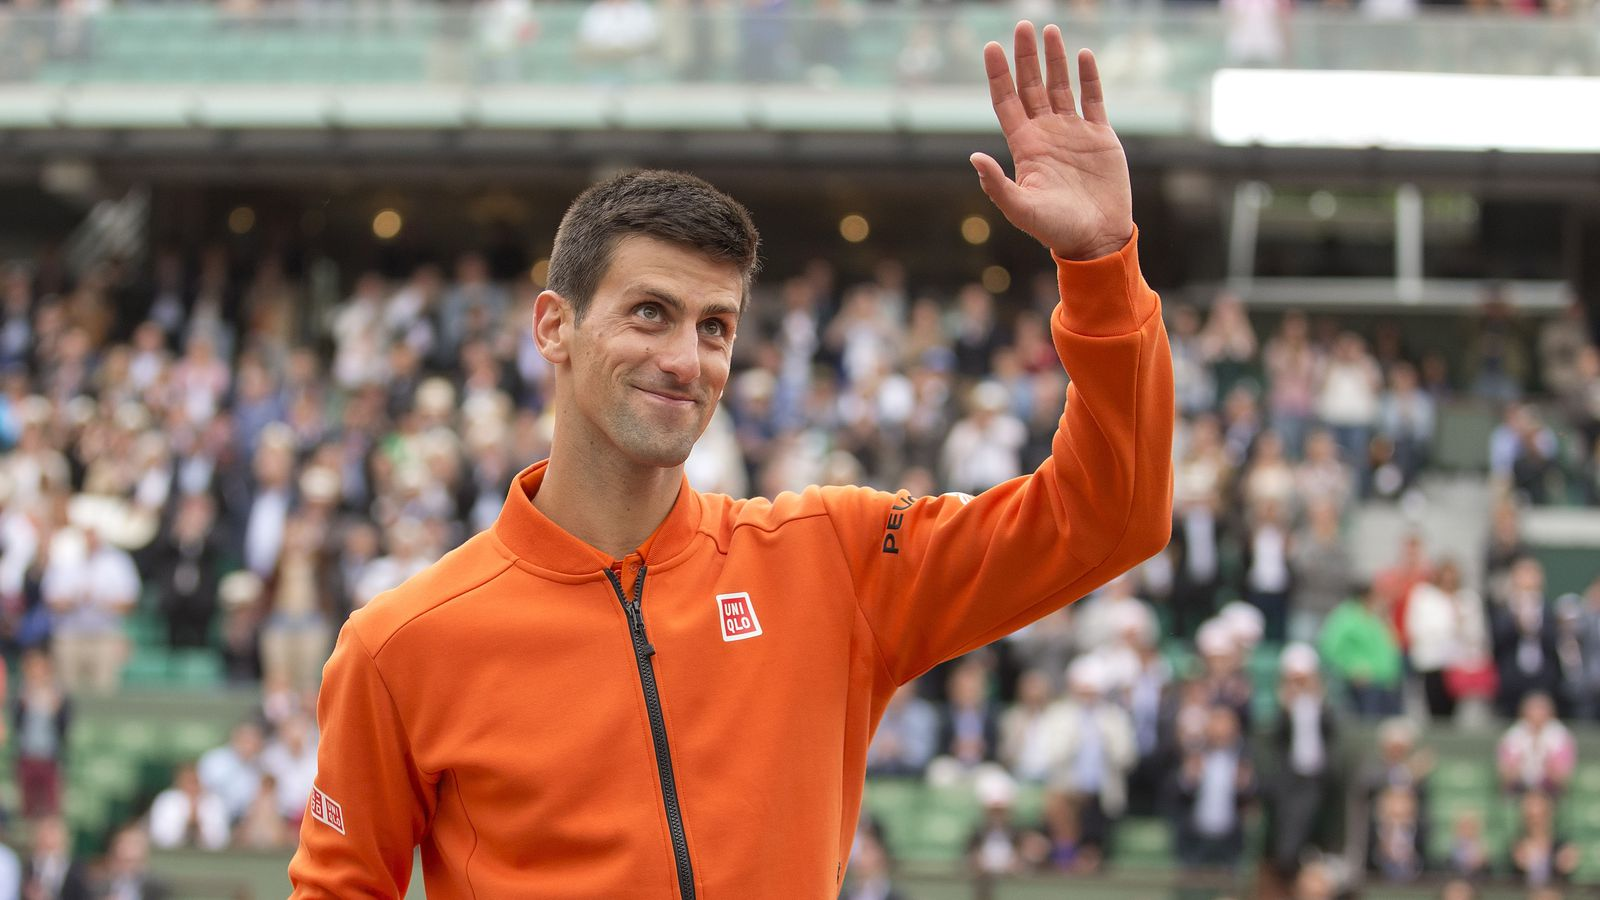 french open 2015 tv schedule and matches for saturday at. Black Bedroom Furniture Sets. Home Design Ideas